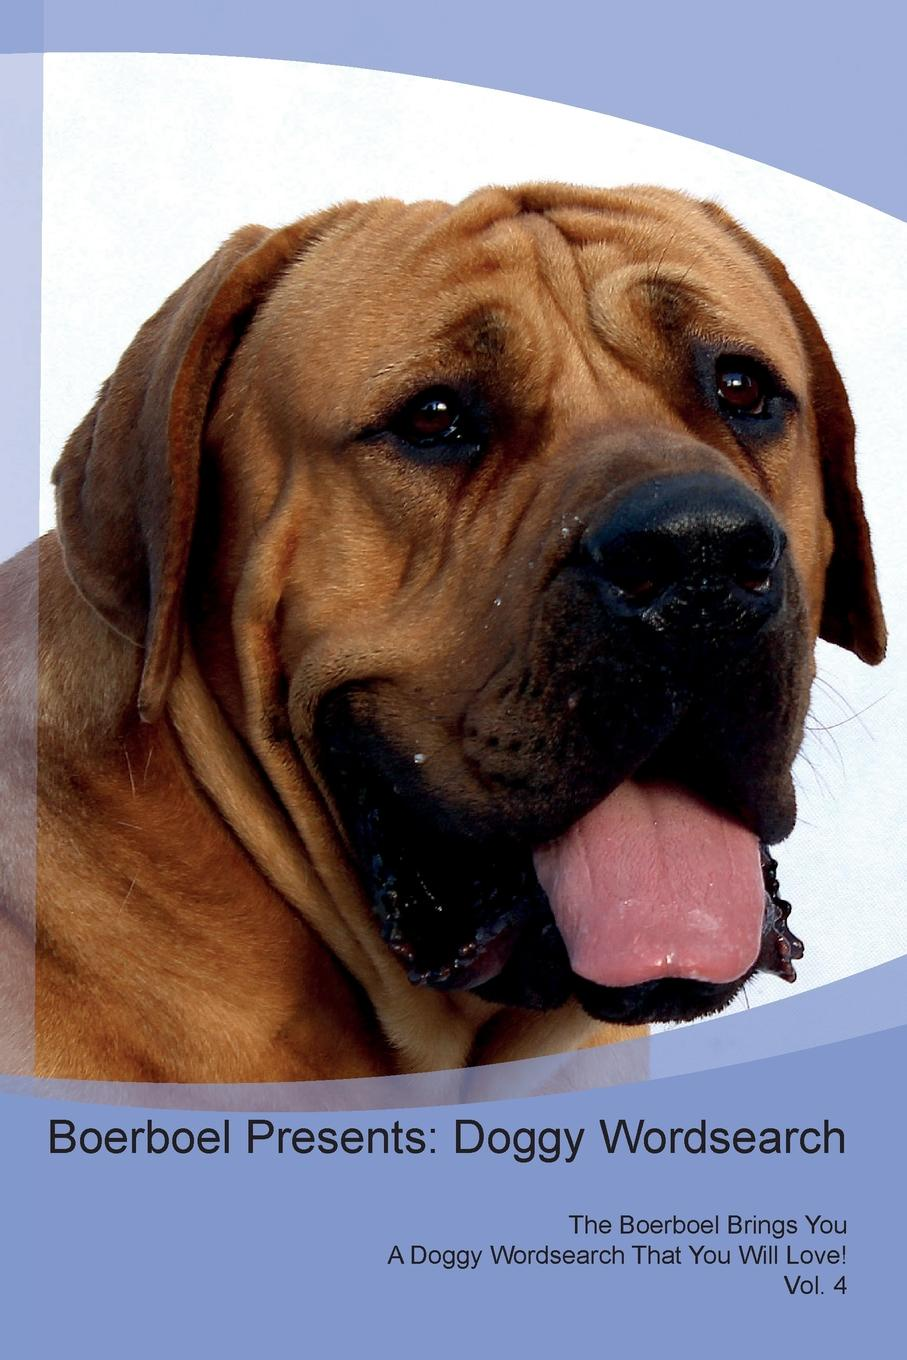 Фото - Doggy Puzzles Boerboel Presents. Doggy Wordsearch The Boerboel Brings You A Doggy Wordsearch That You Will Love! Vol. 4 harry holstone boerboel the boerboel dog owner s manual boerboel dog care personality grooming health costs and feeding all included